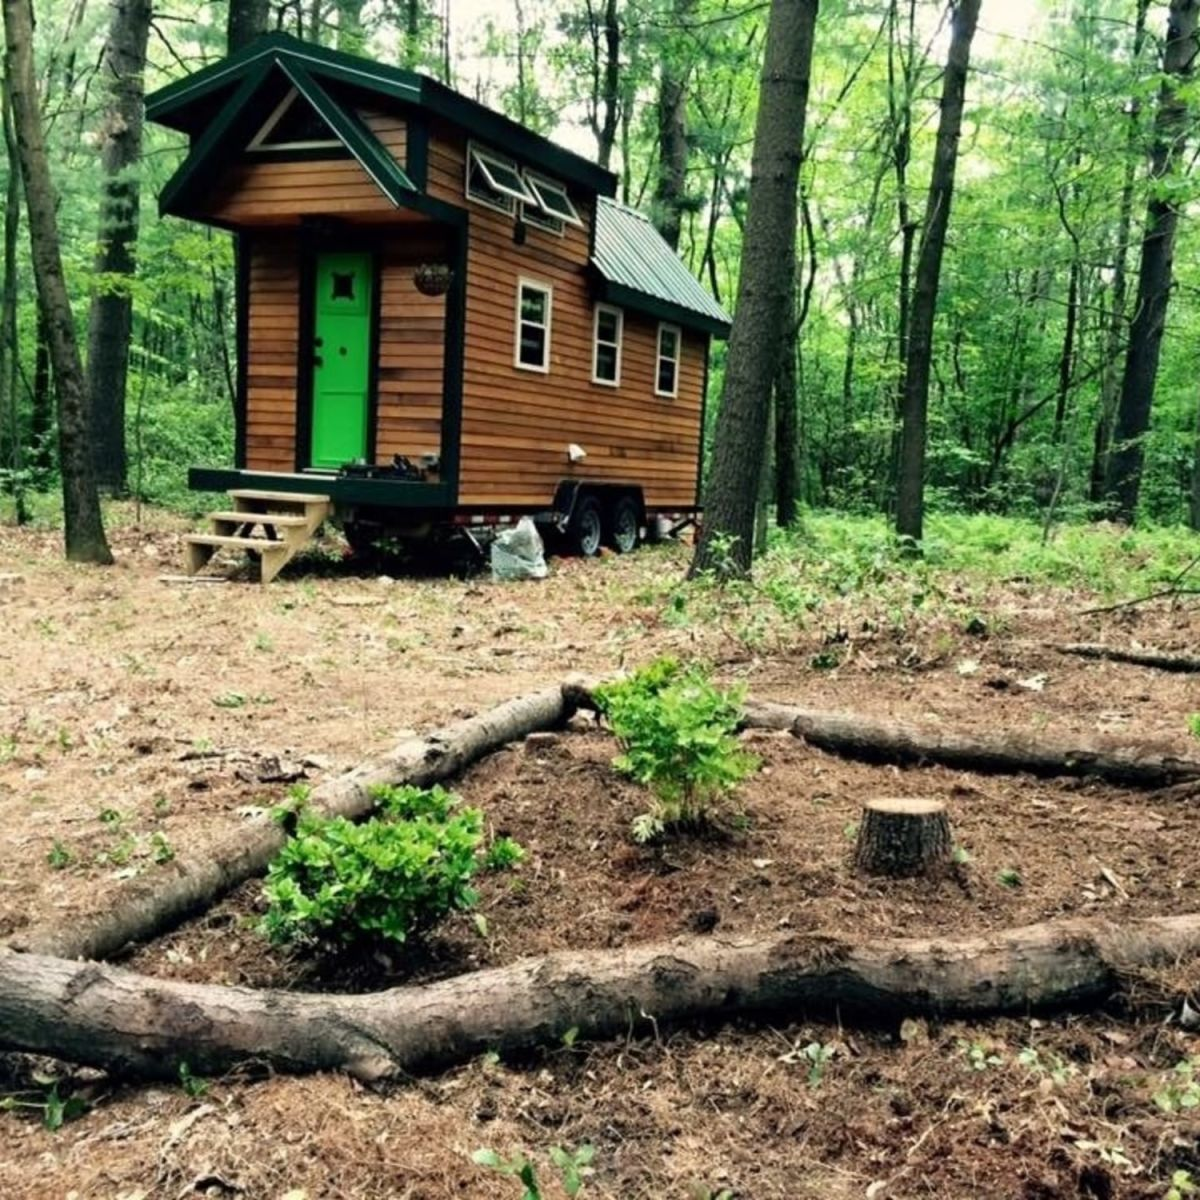 For Sale Leicester Massachusetts United States 40 000 Tiny House Listings Tiny Houses For Sale Tiny House